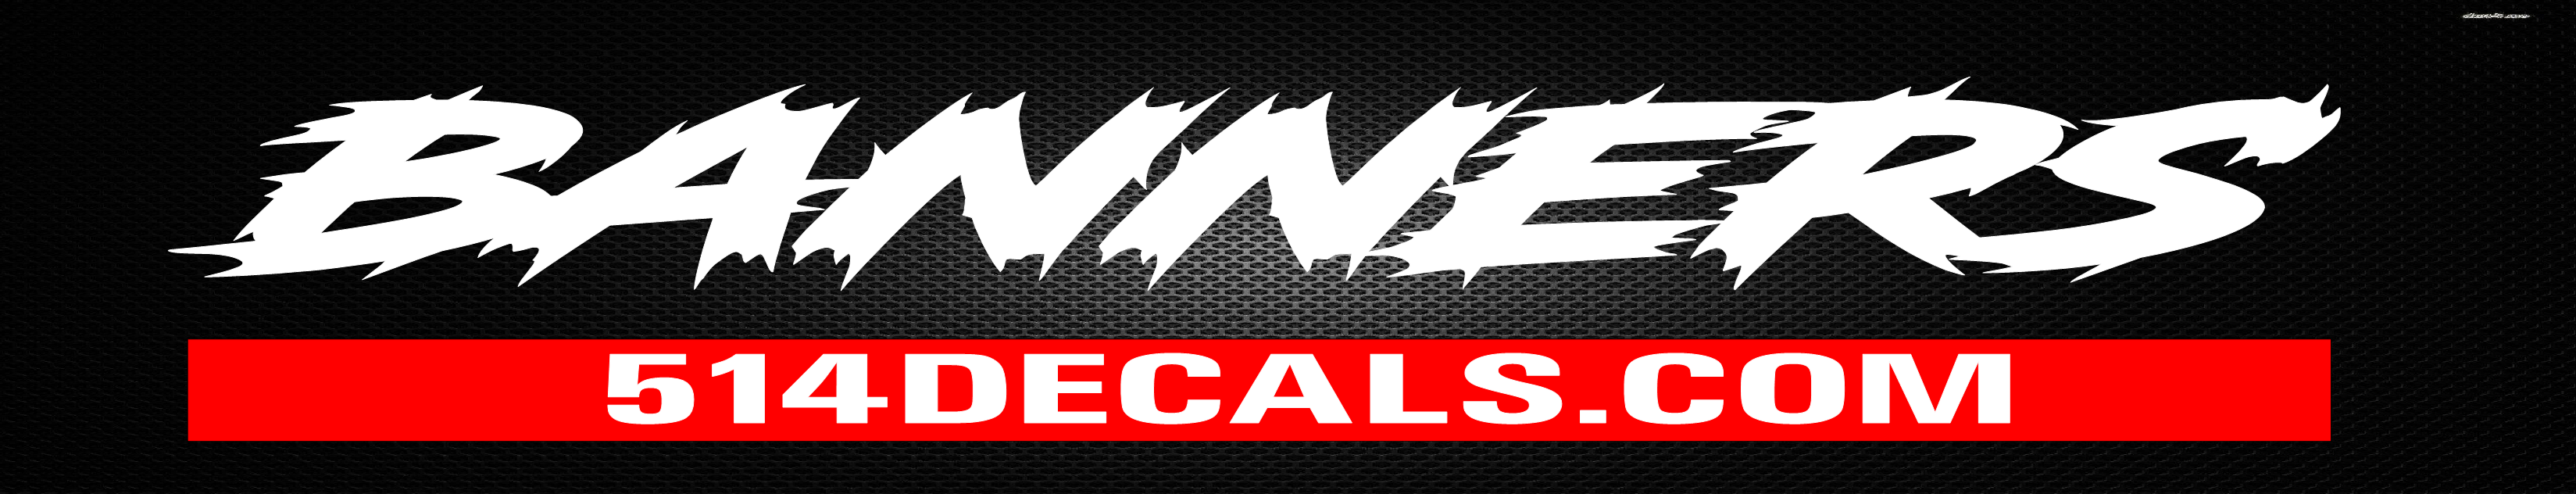 jdm-car-banners-stickers-decals.png